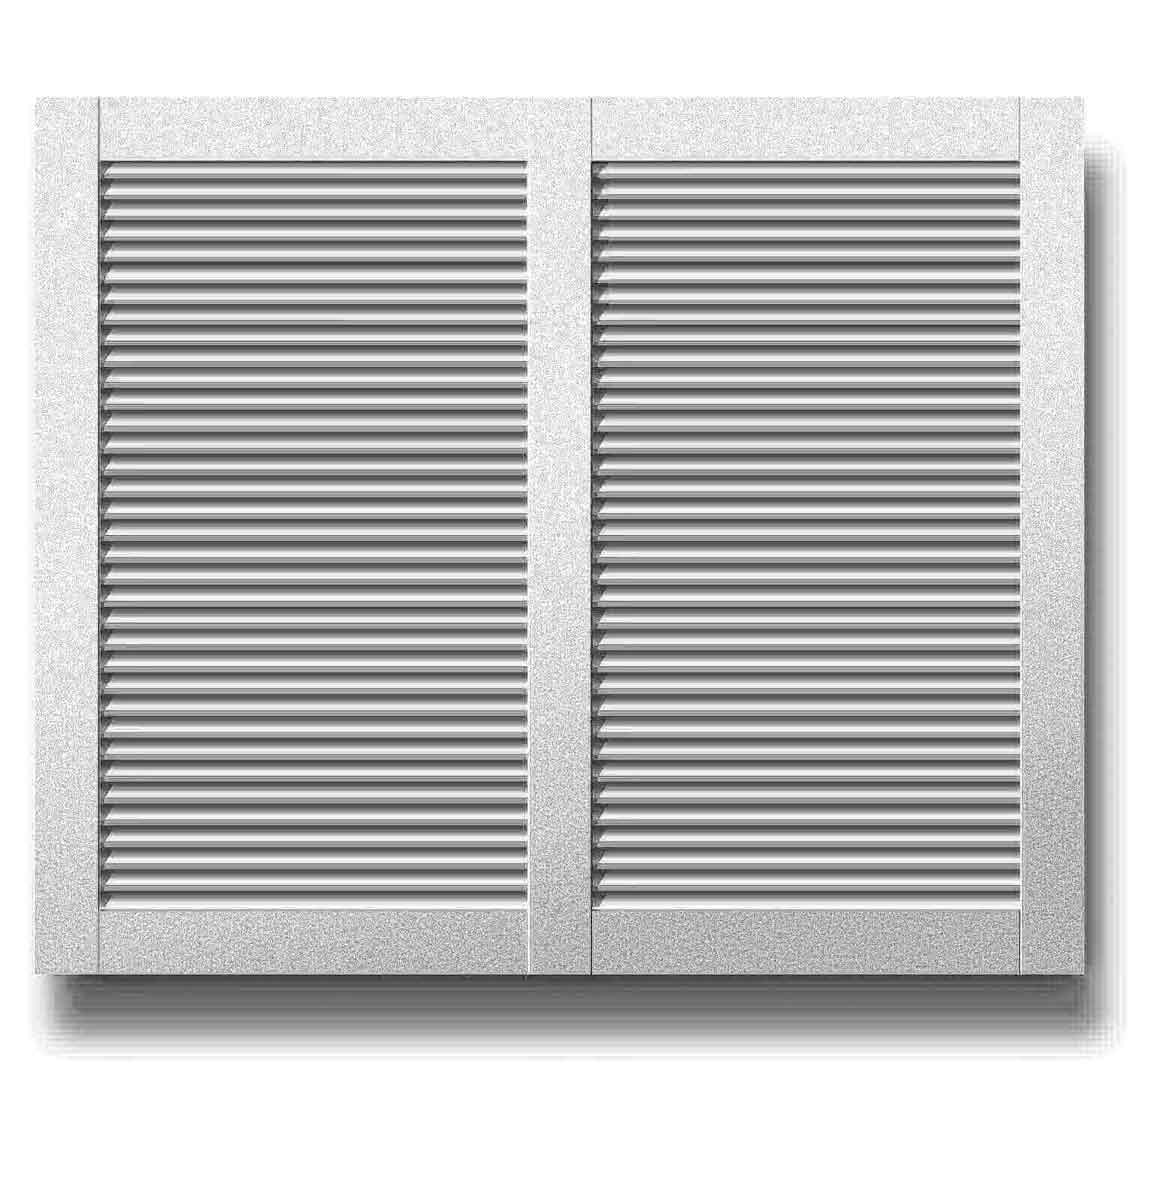 Ross Technology DOS 60 Minute FE/BR Maximum Security Louvers